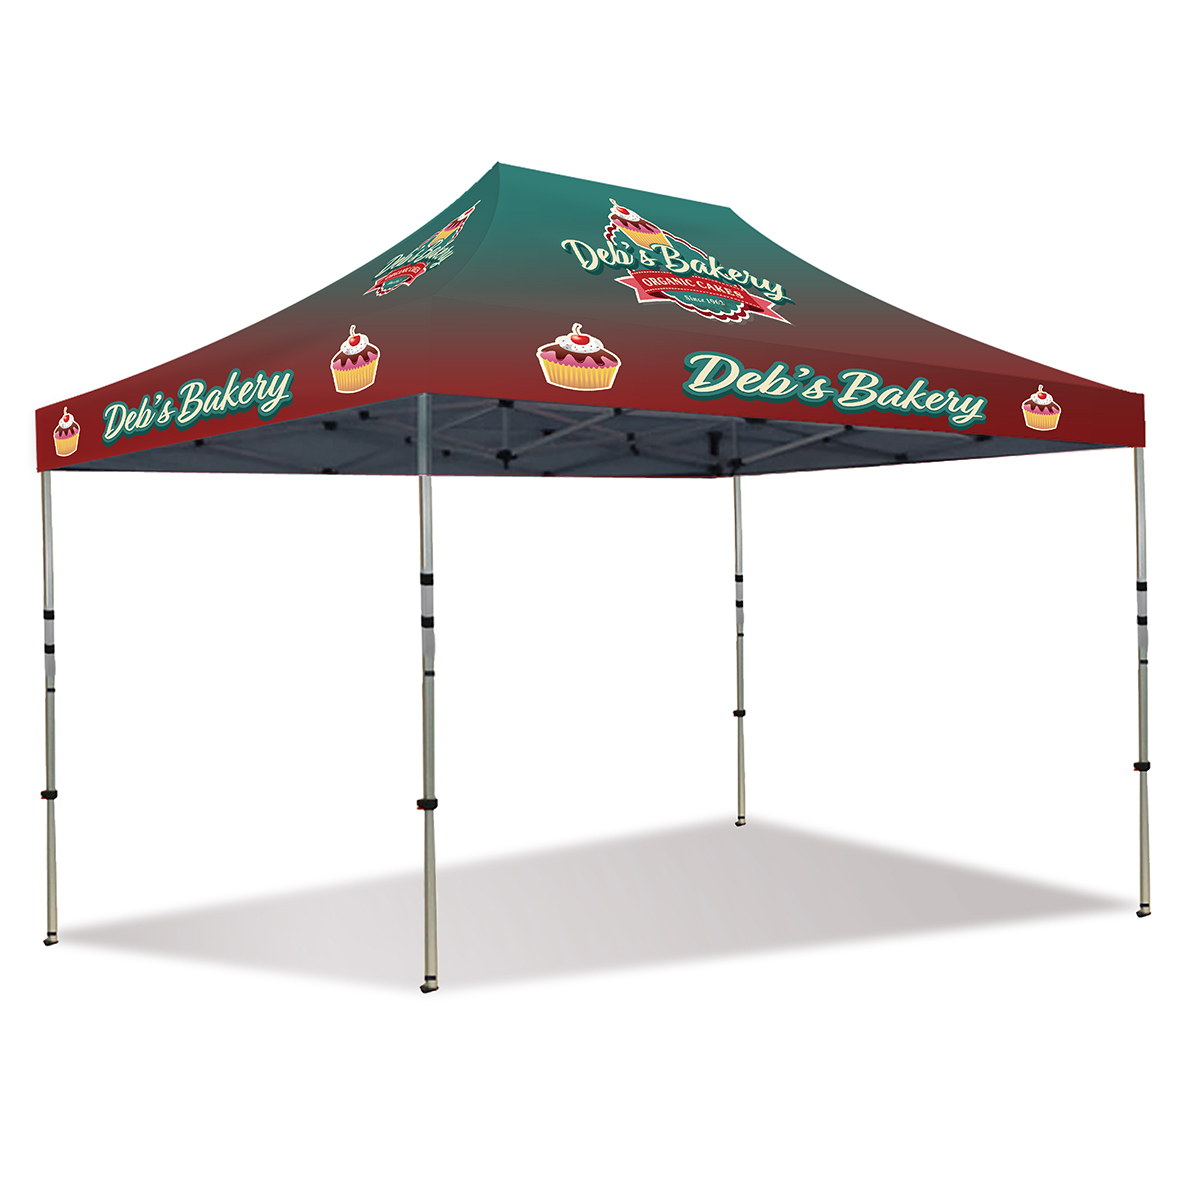 15ft Pop Up Canopy - Full Color